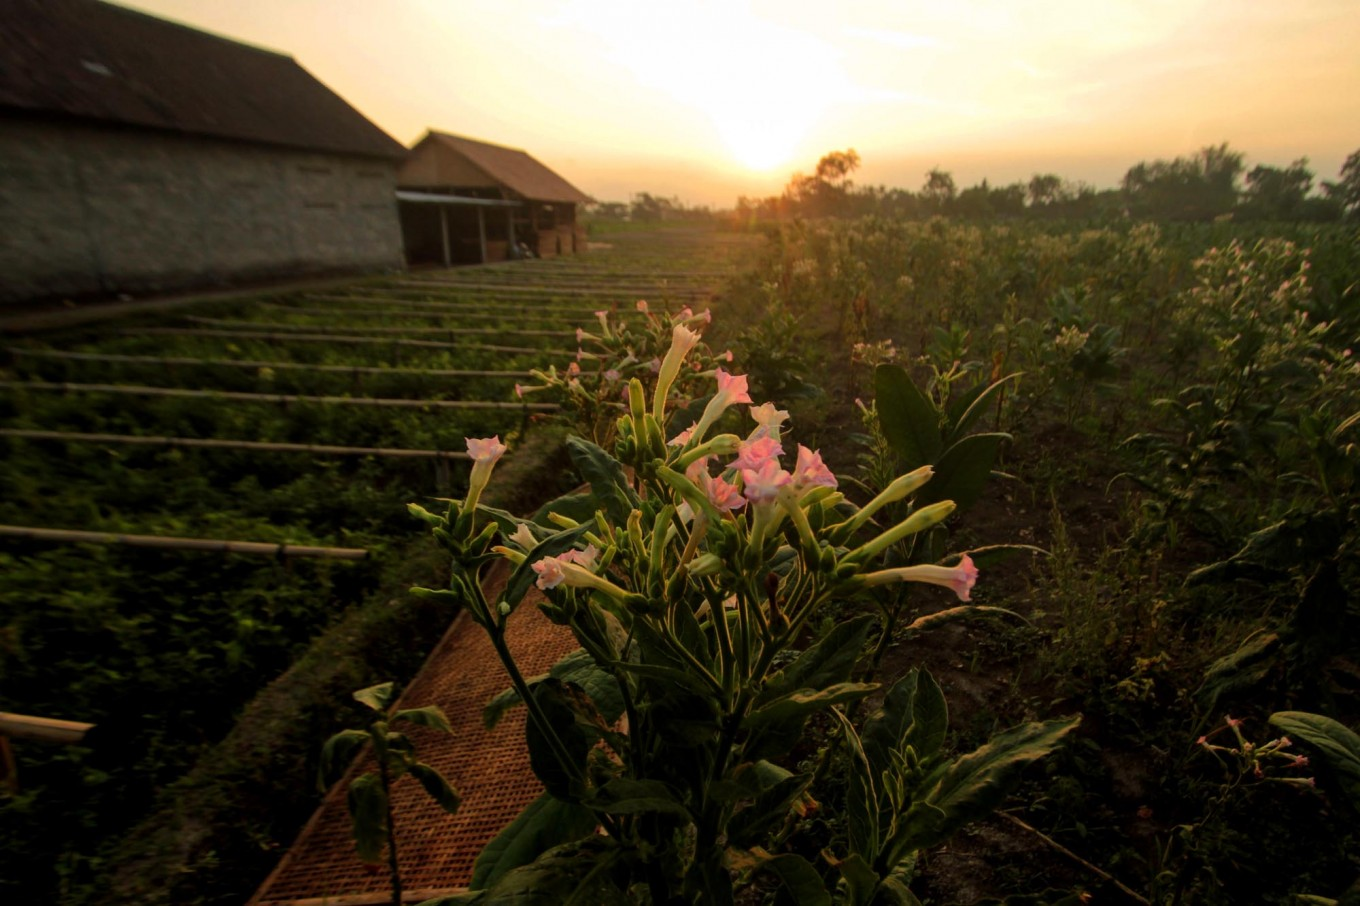 Tobacco flowers are seen in the foreground with tobacco plants in the background, in Manisrenggo village, Klaten regency, Central Java. A total of 600 hectares from a 1,509 hectare plot in the district is allocated for tobacco plants. JP/Aditya Sagita